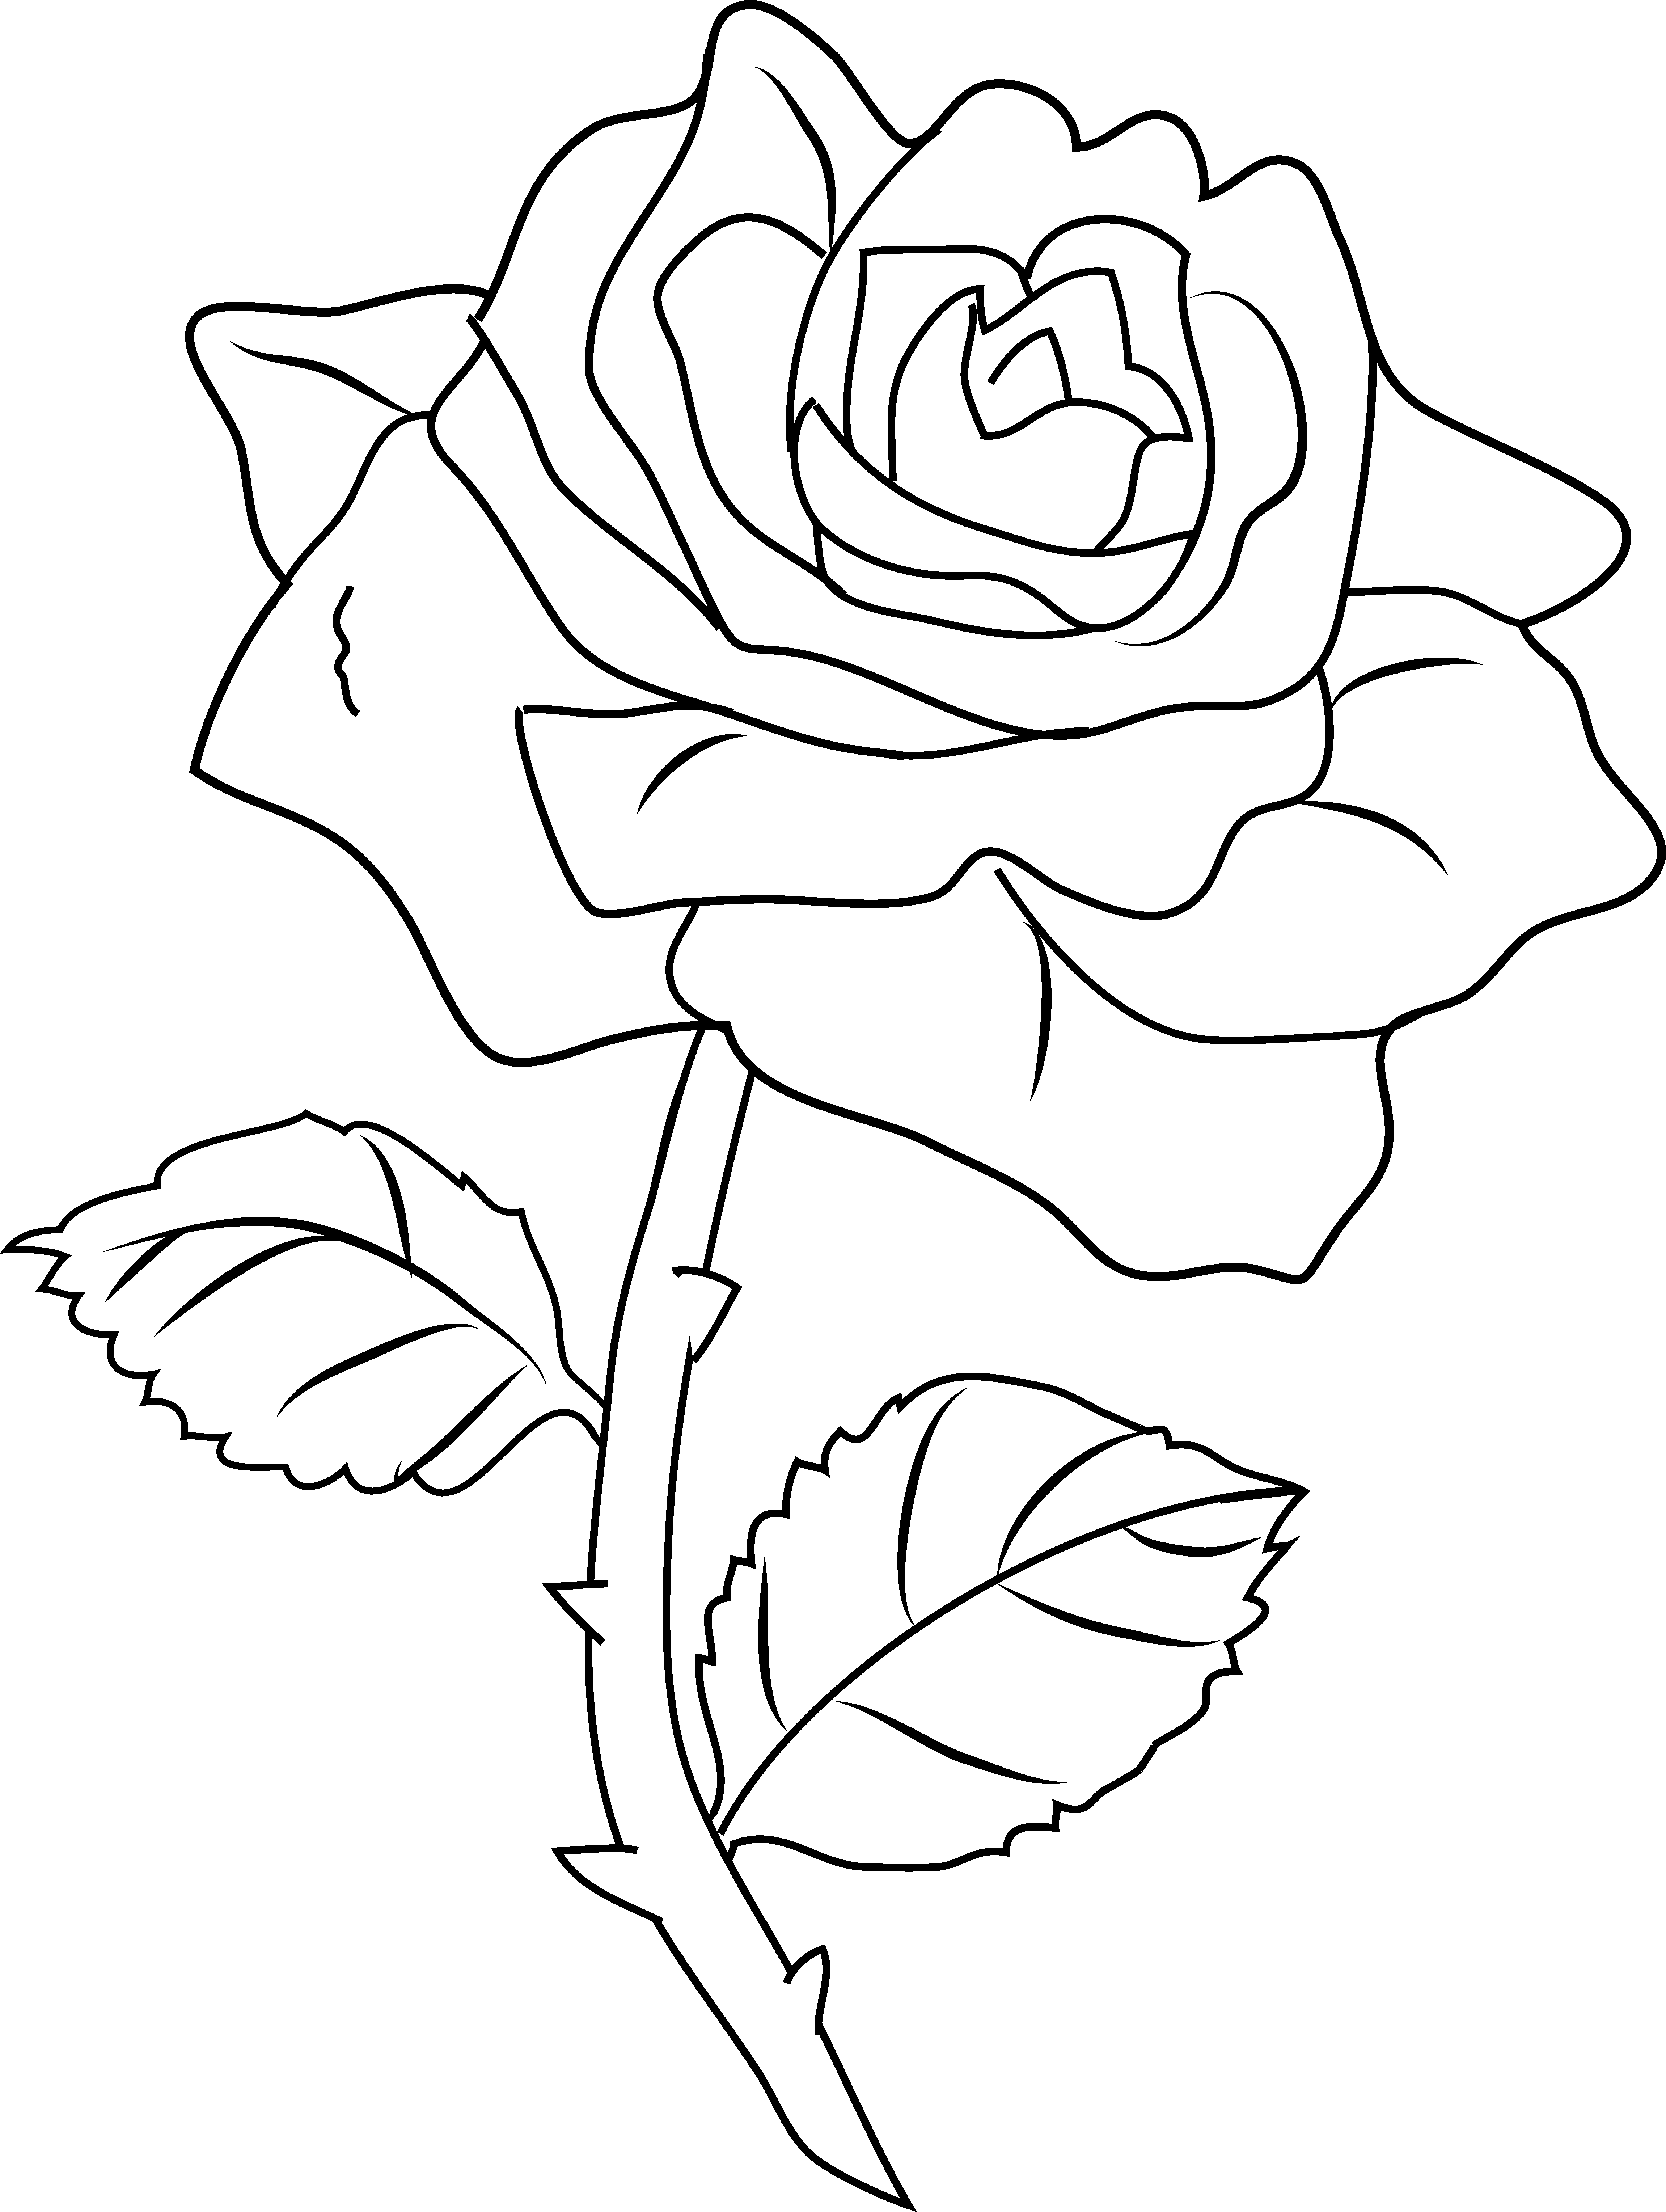 free coloring pages of roses free printable roses coloring pages for kids of free roses coloring pages